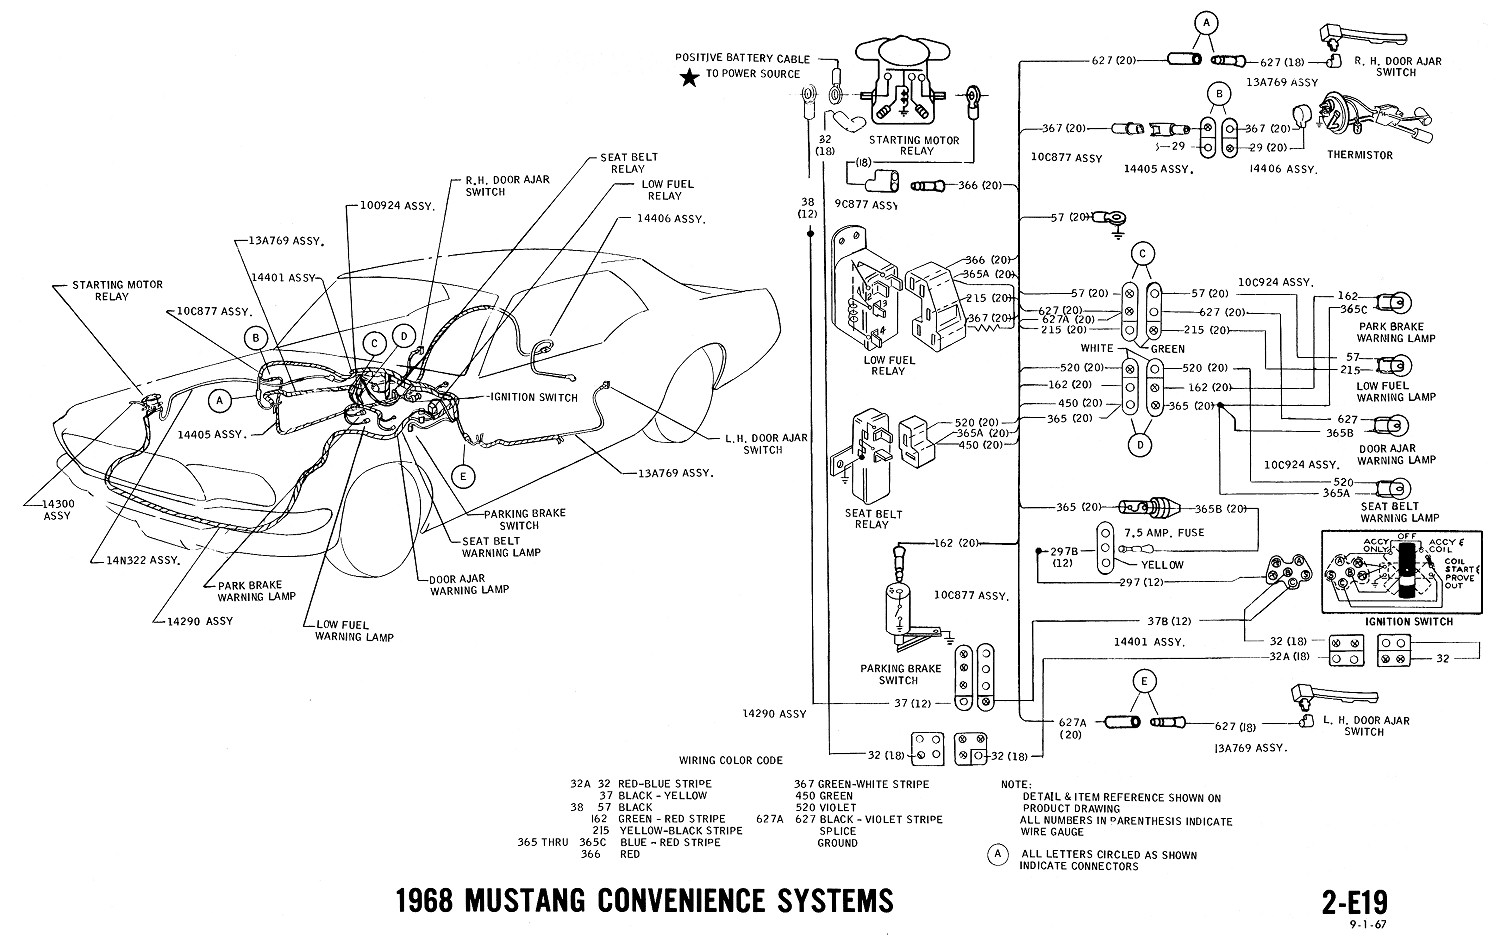 E19 66 mustang wiring diagram radio tape 66 mustang fuse diagram 1970 mustang radio wiring diagram at virtualis.co